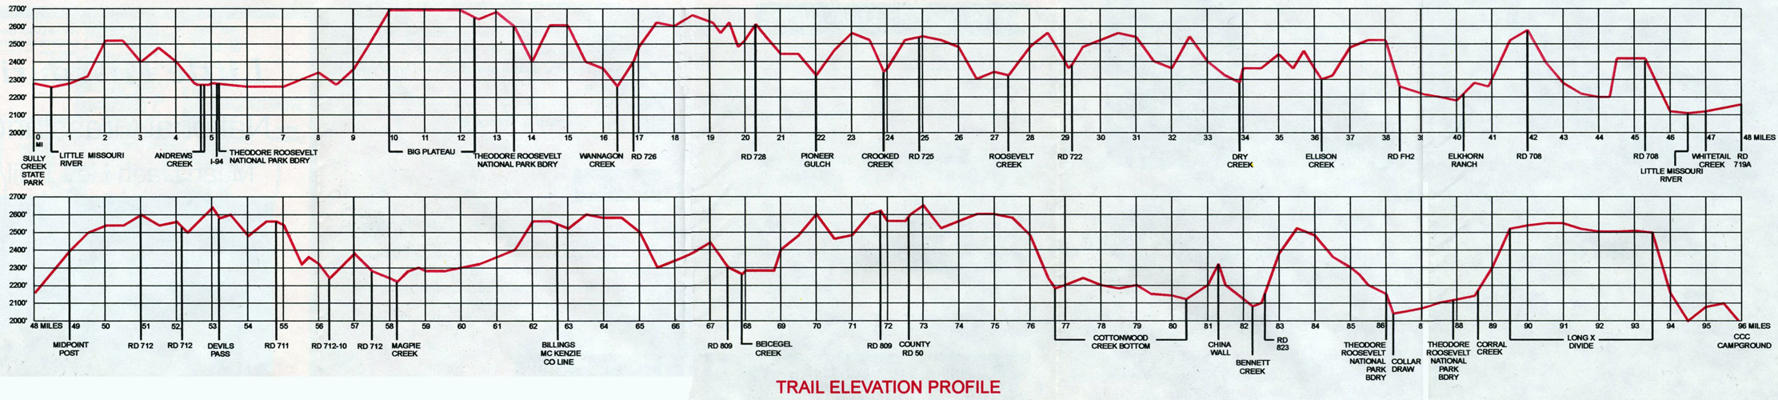 Maah Daah Hey Trail Profile: Check out the race profile, pretty bumpy, mostly up or down, not a lot in between